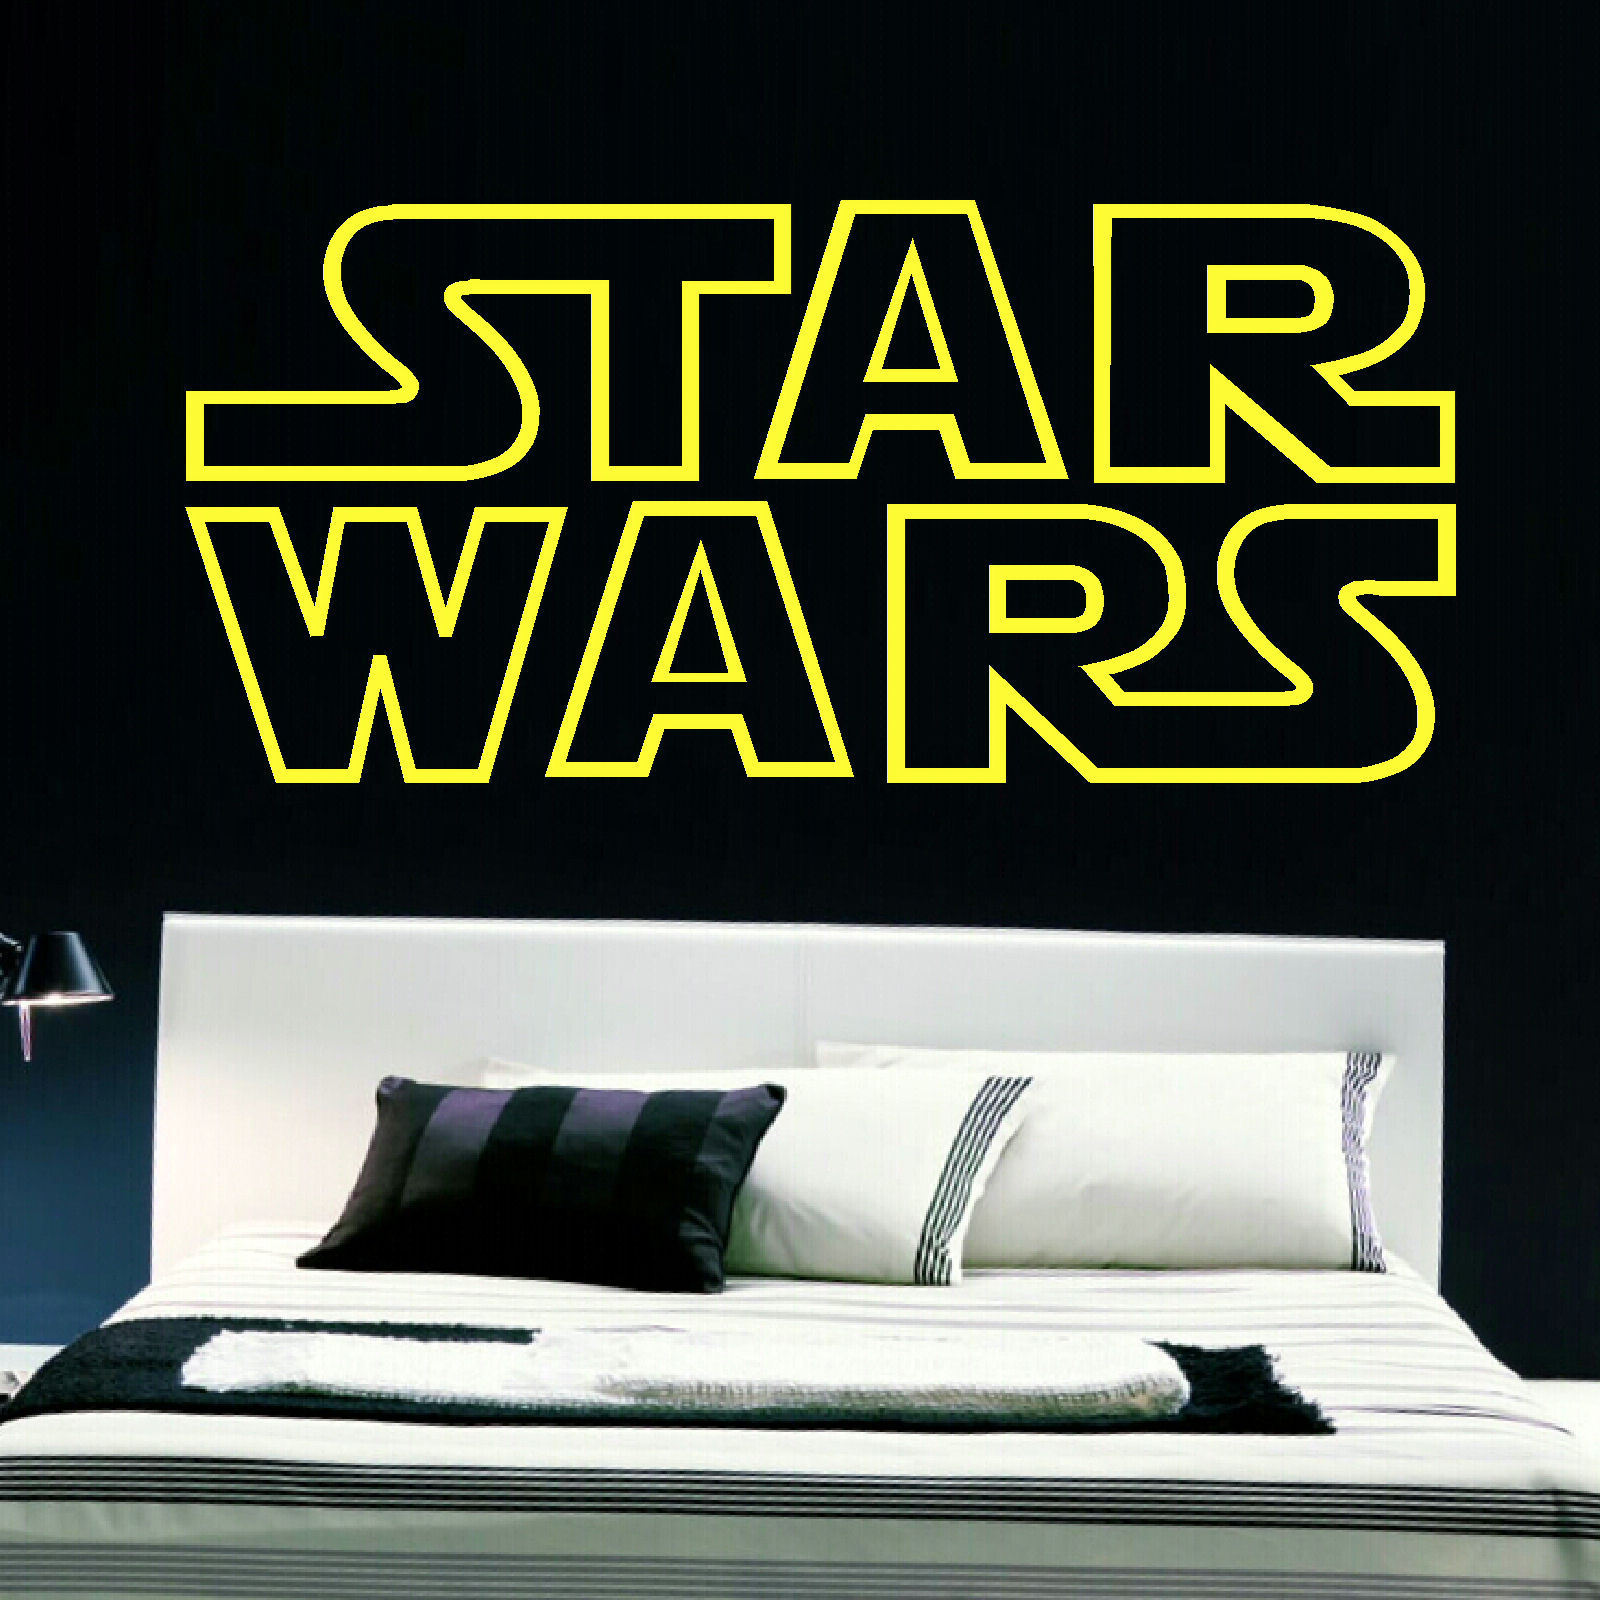 STAR WARS BEDROOM LOGO WALL STICKER IN QUALITY CUT MATT VINYL ART TRANSFER.  New ... Part 46